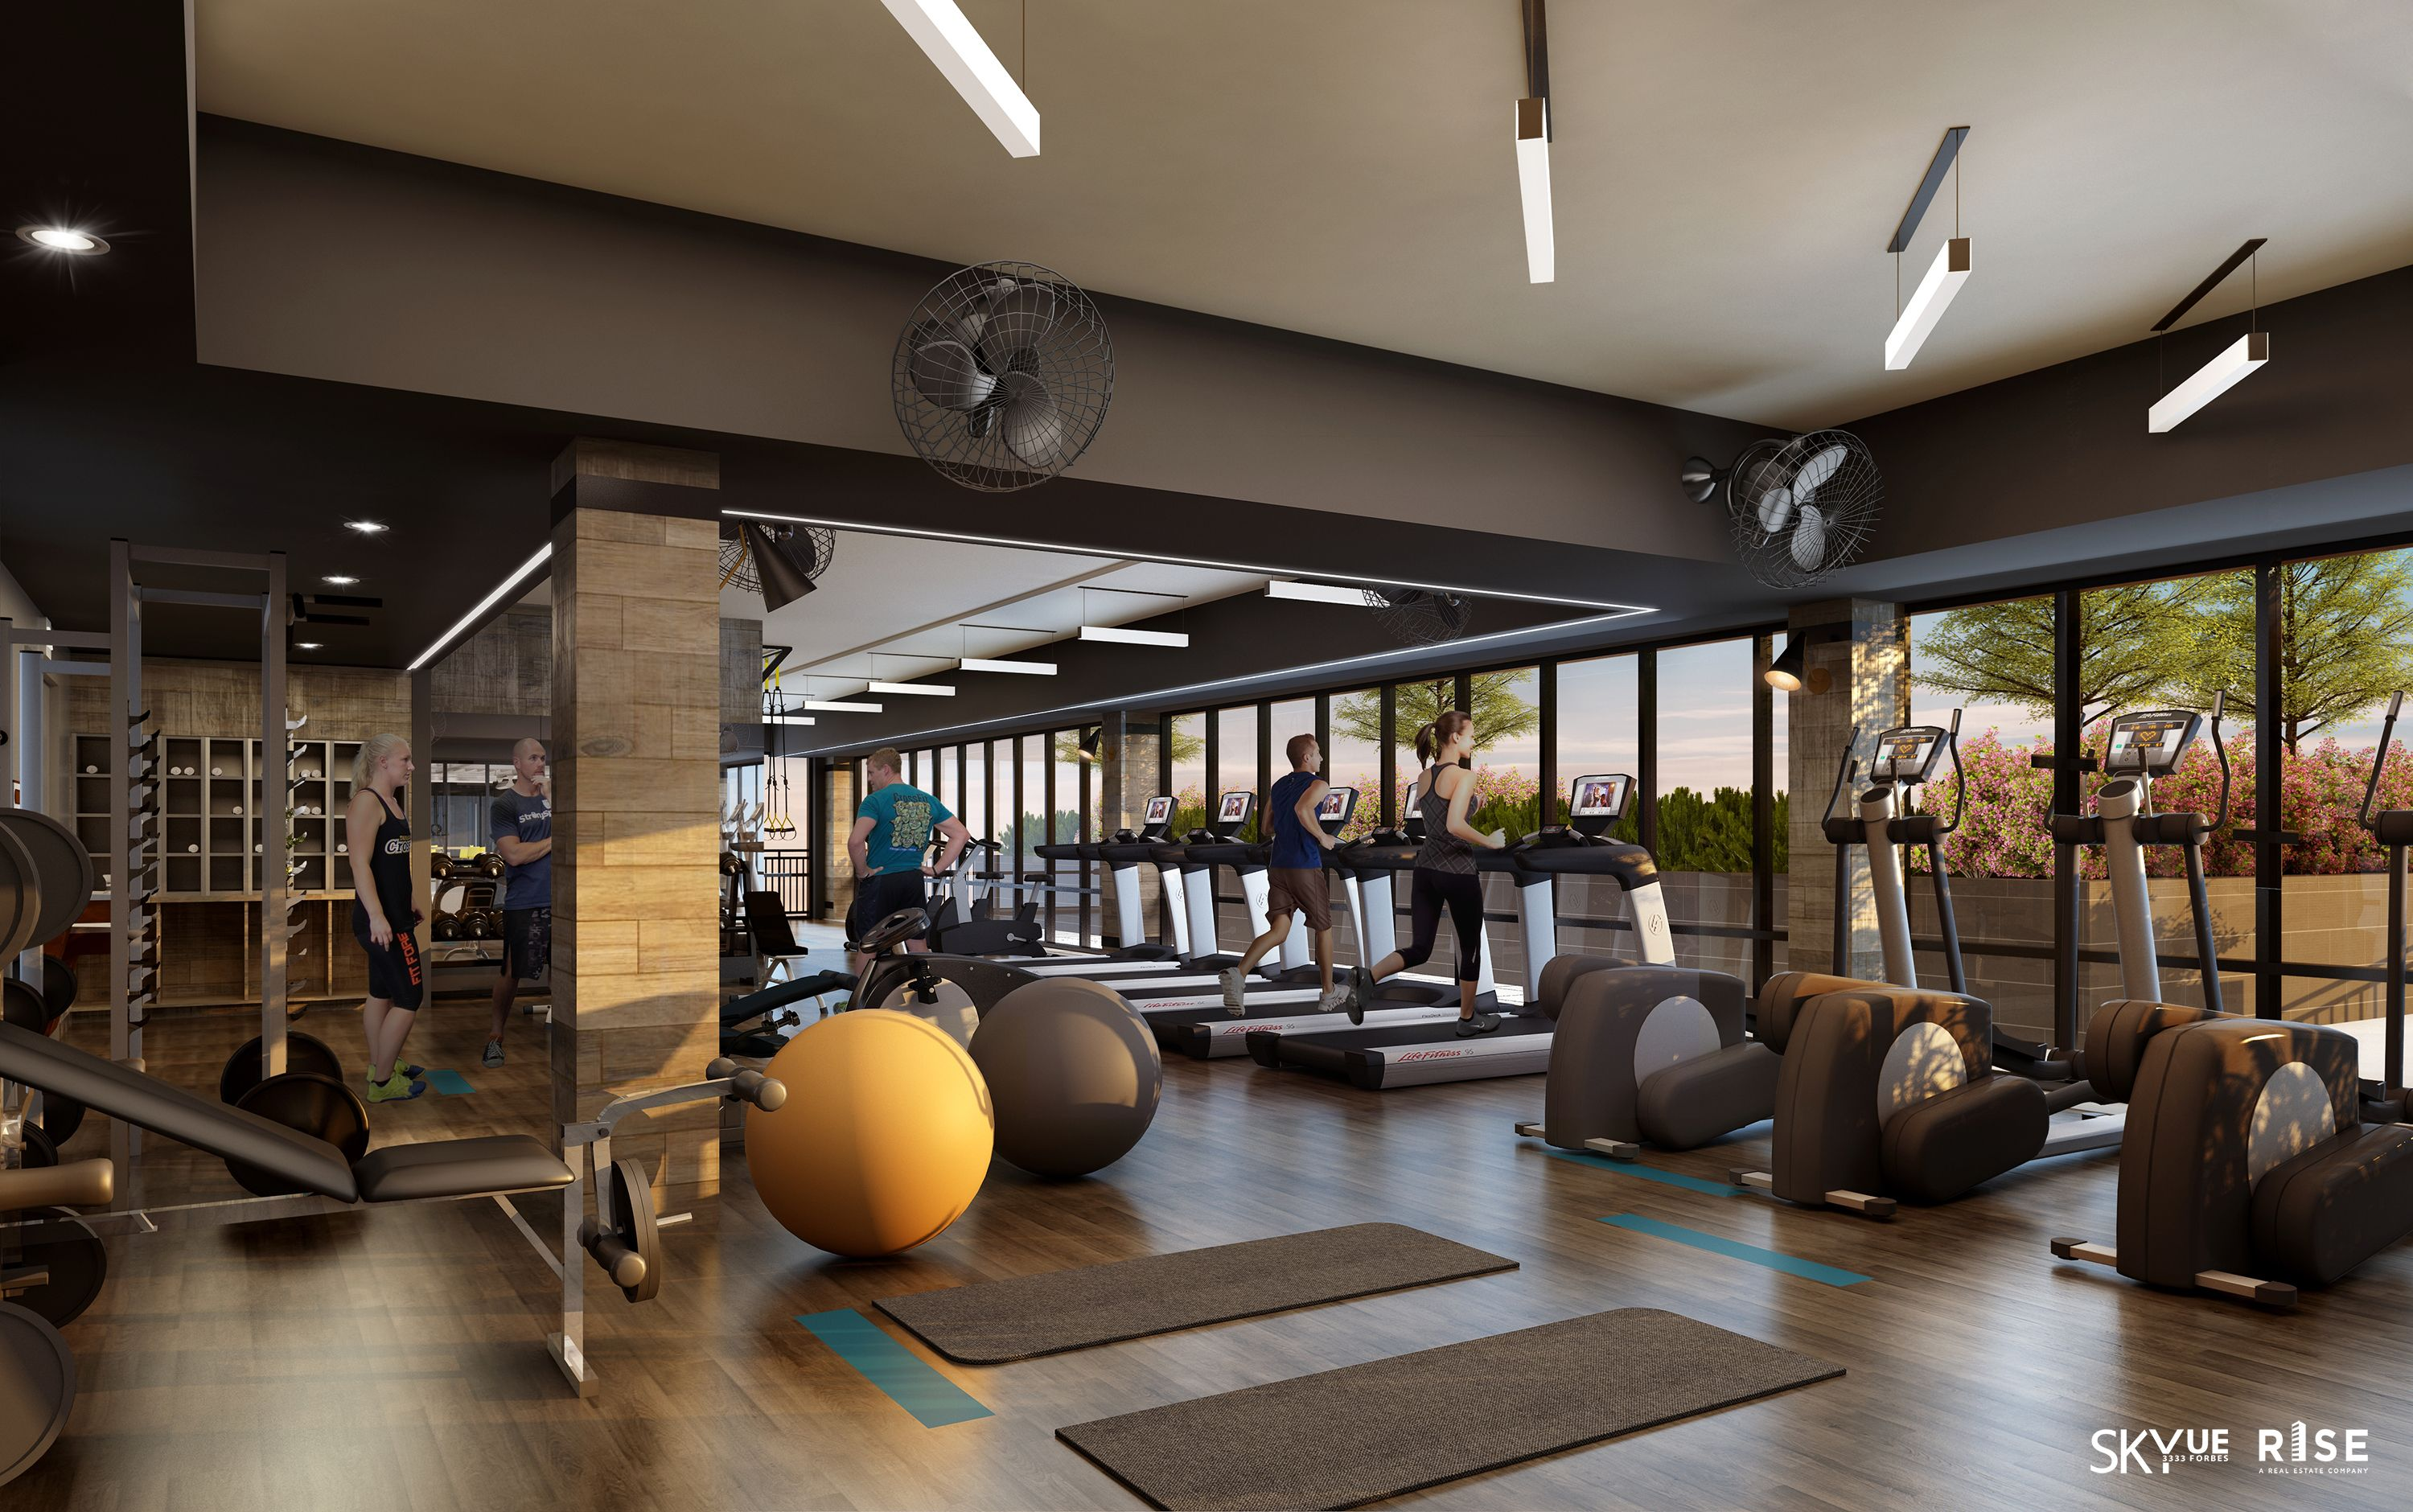 Images about gym s design on pinterest home gyms a gym and search - Fitness Room Google Search